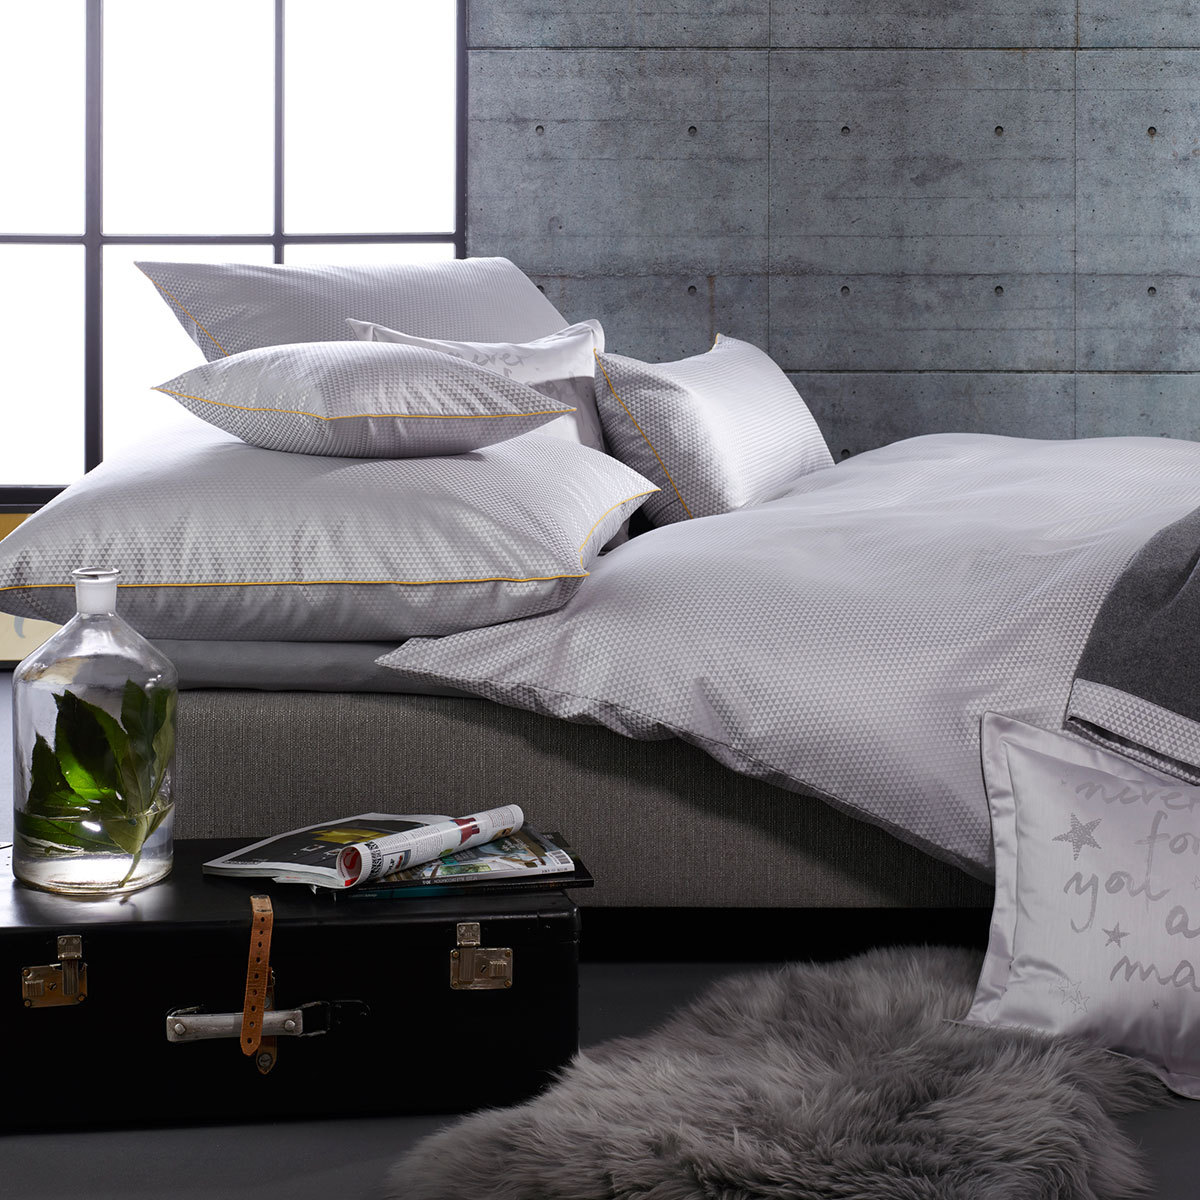 curt bauer mako brokat damast bettw sche maris perlgrau g nstig online kaufen bei bettwaren shop. Black Bedroom Furniture Sets. Home Design Ideas